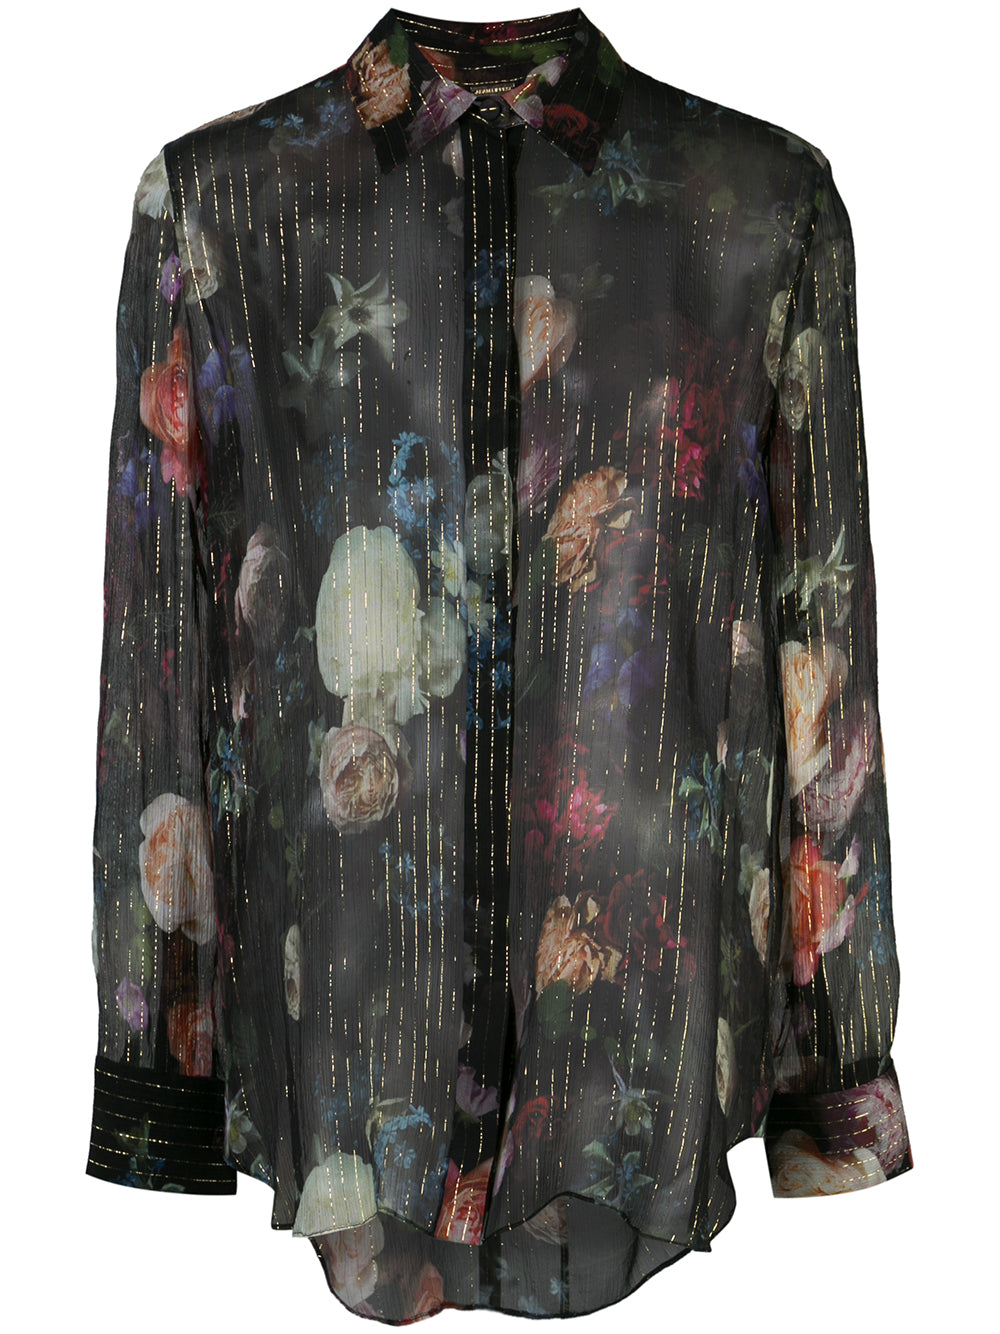 MENSWEAR TOP IN PRINTED CHIFFON